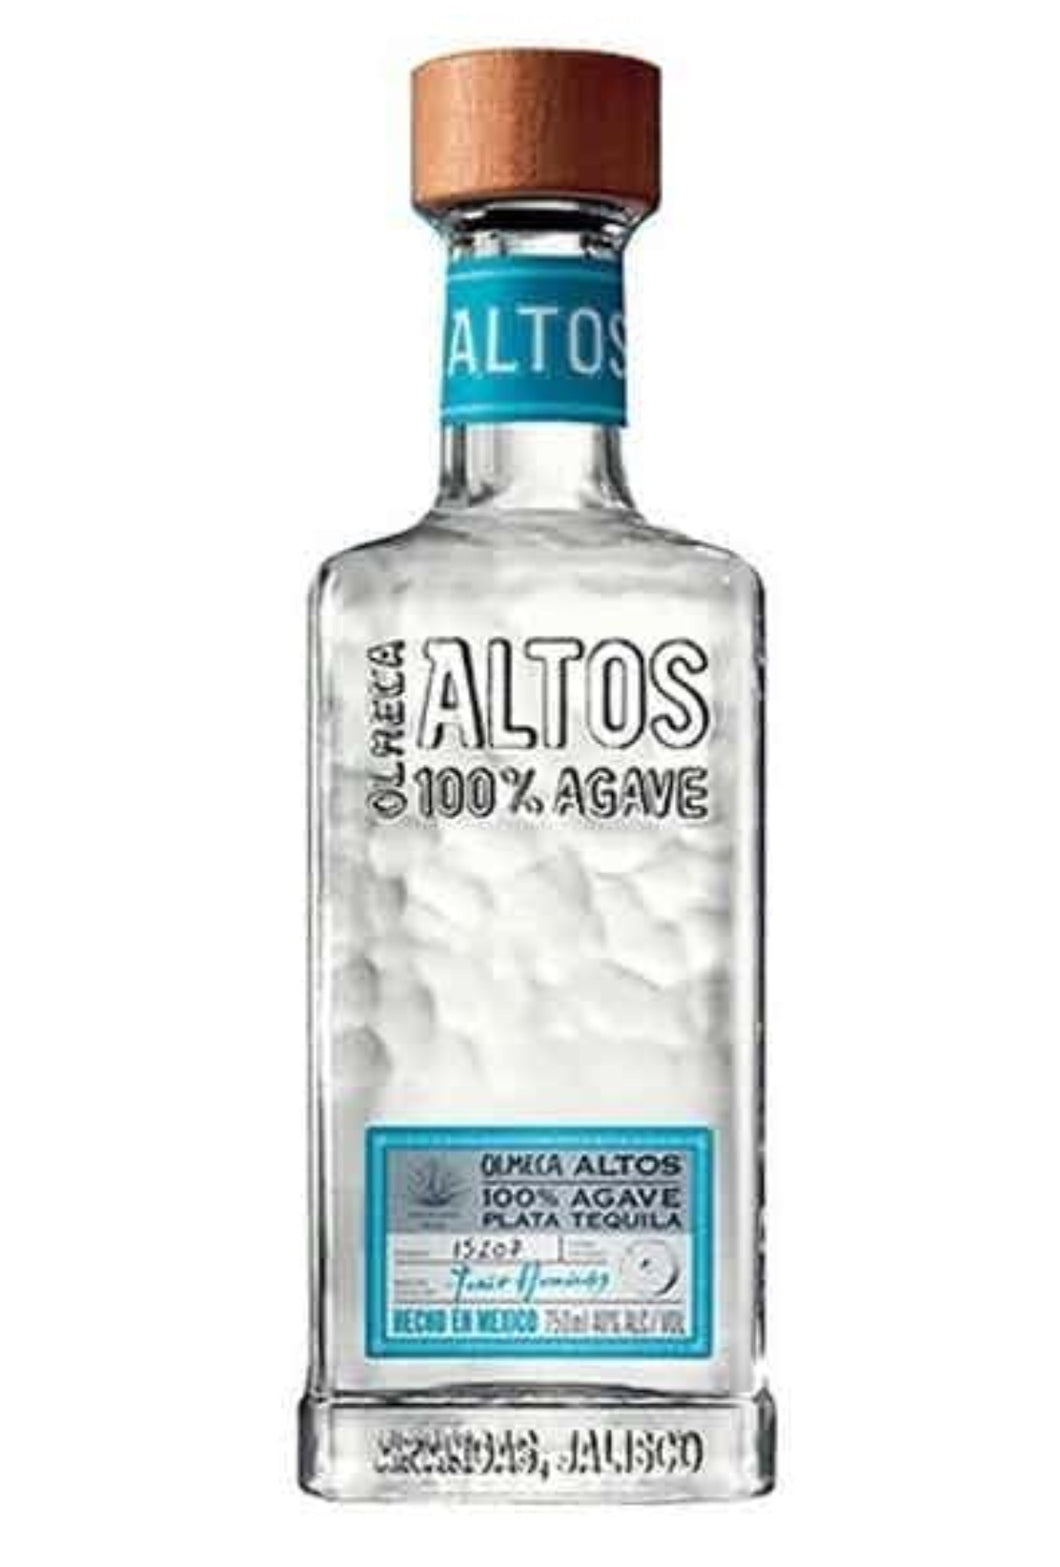 Altos silver 750ml